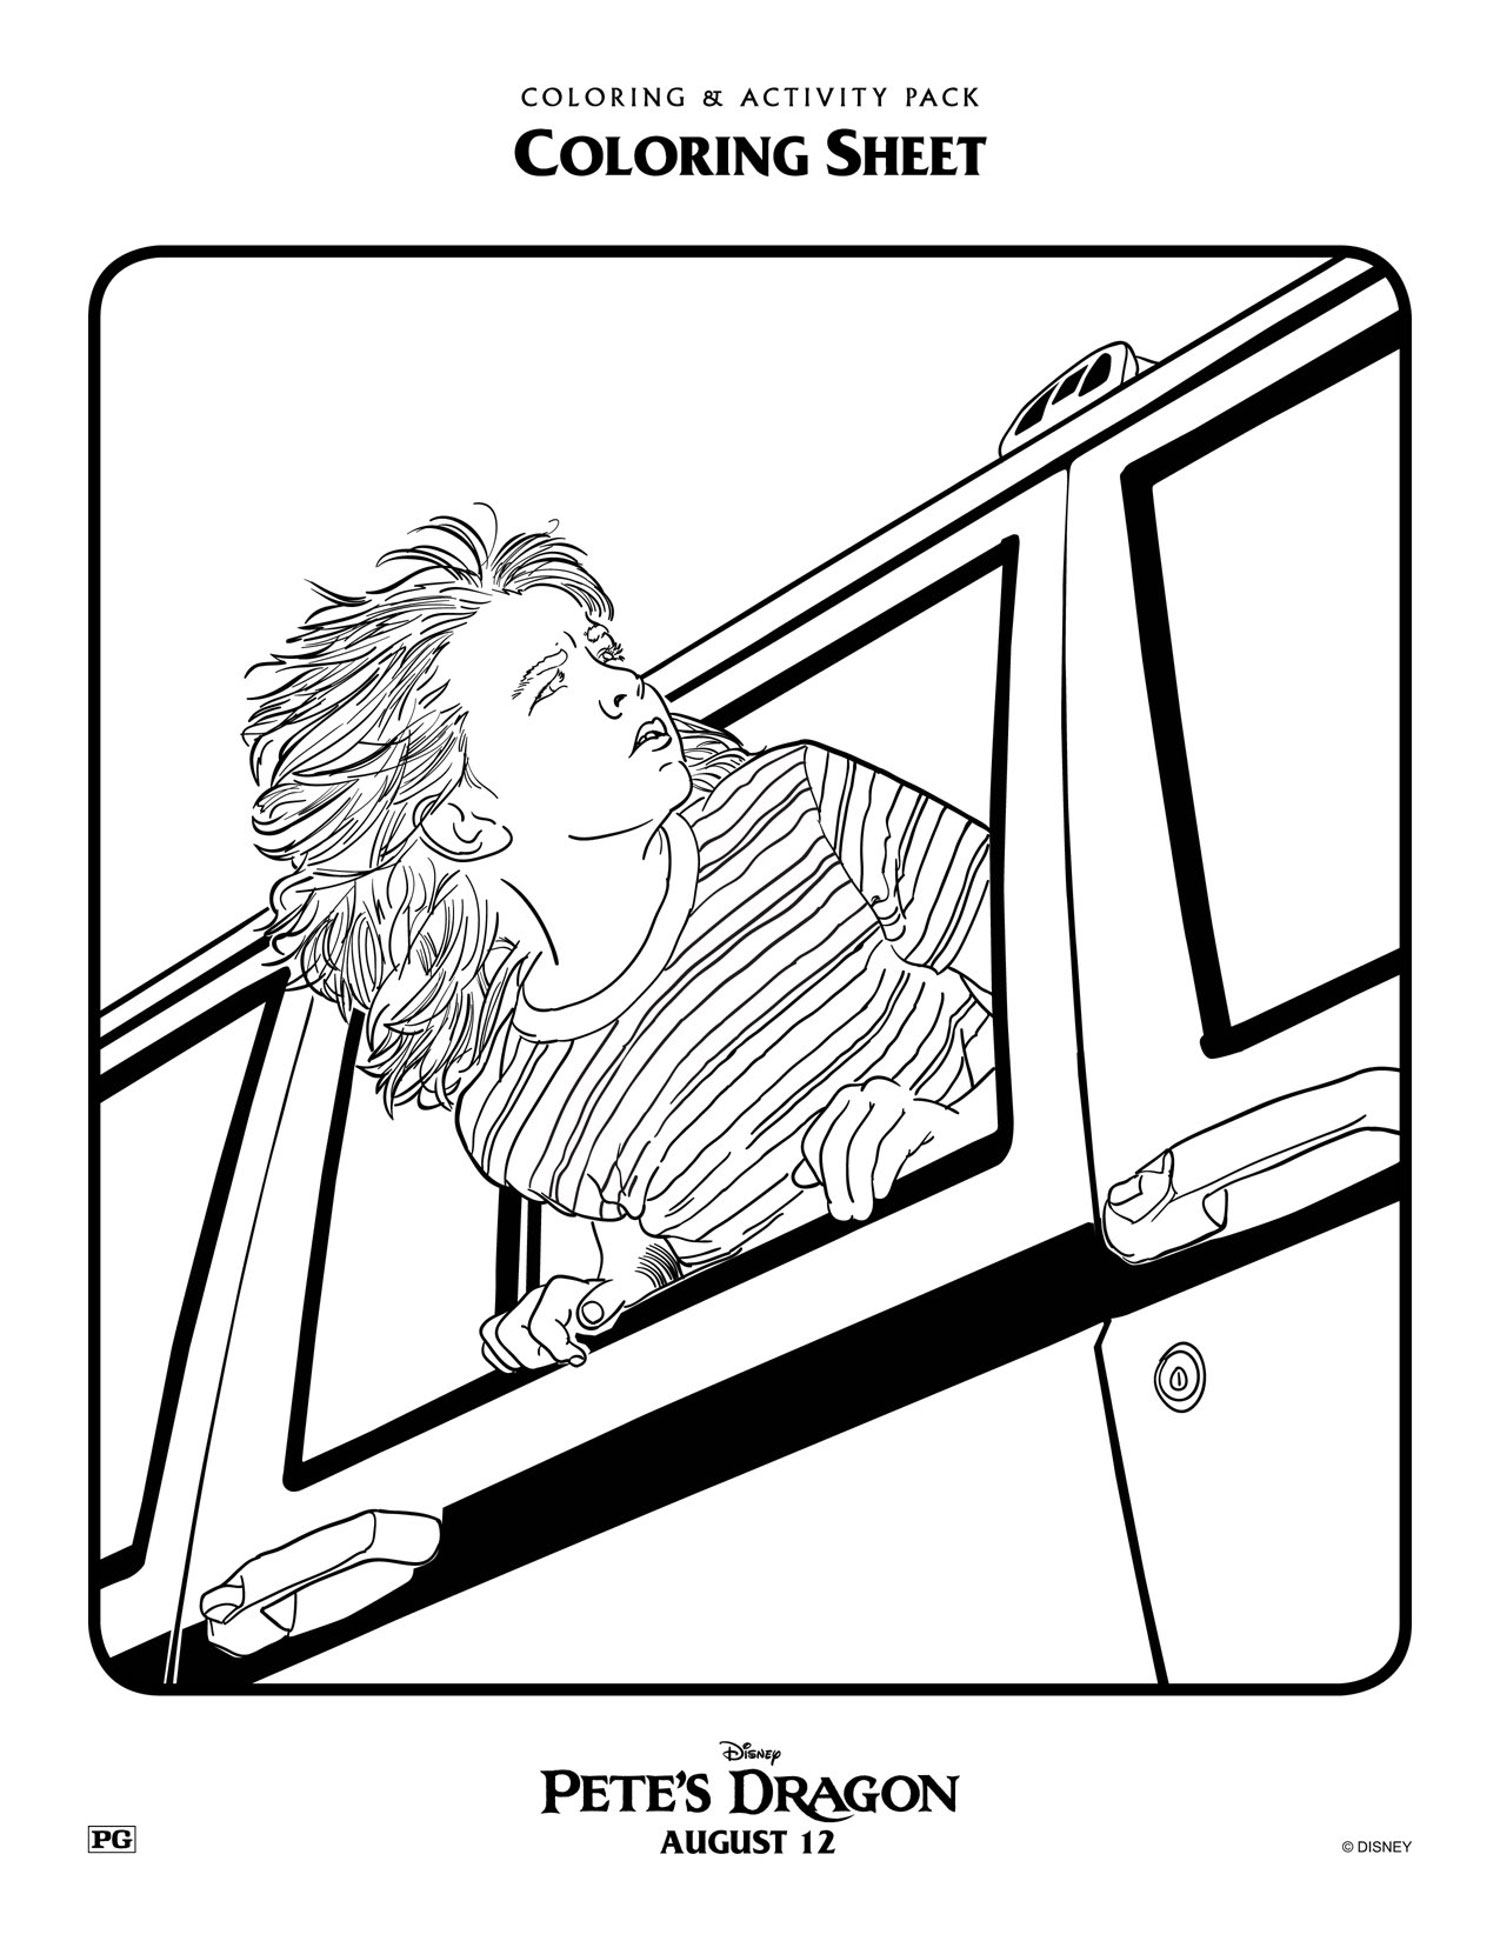 Pete's Dragon movie coloring page for kids - Mommy Scene